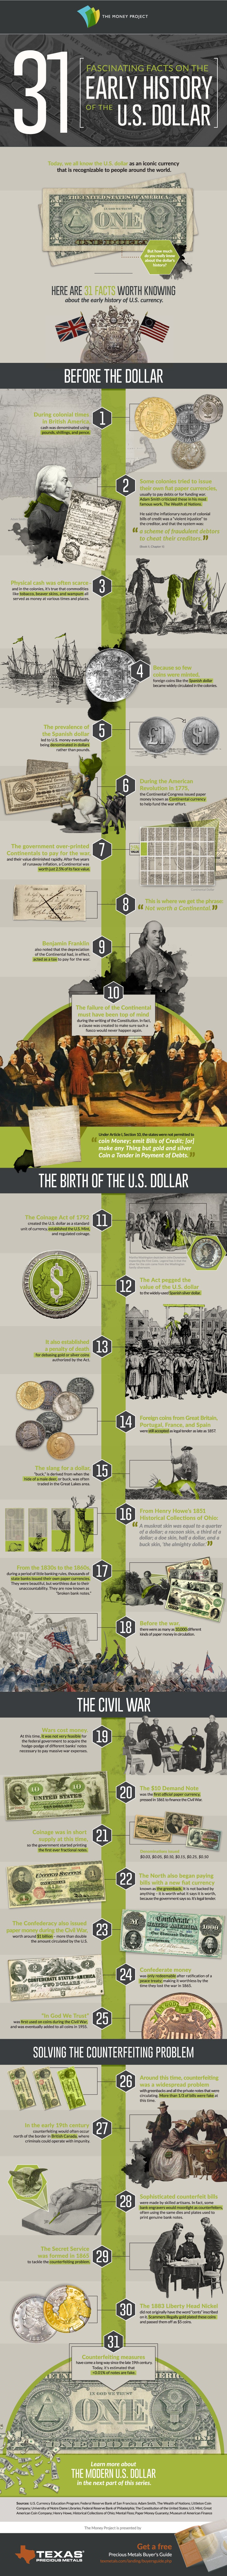 The U.S. Dollar Through the Ages- 31 Fascinating Historical Facts - Infographic